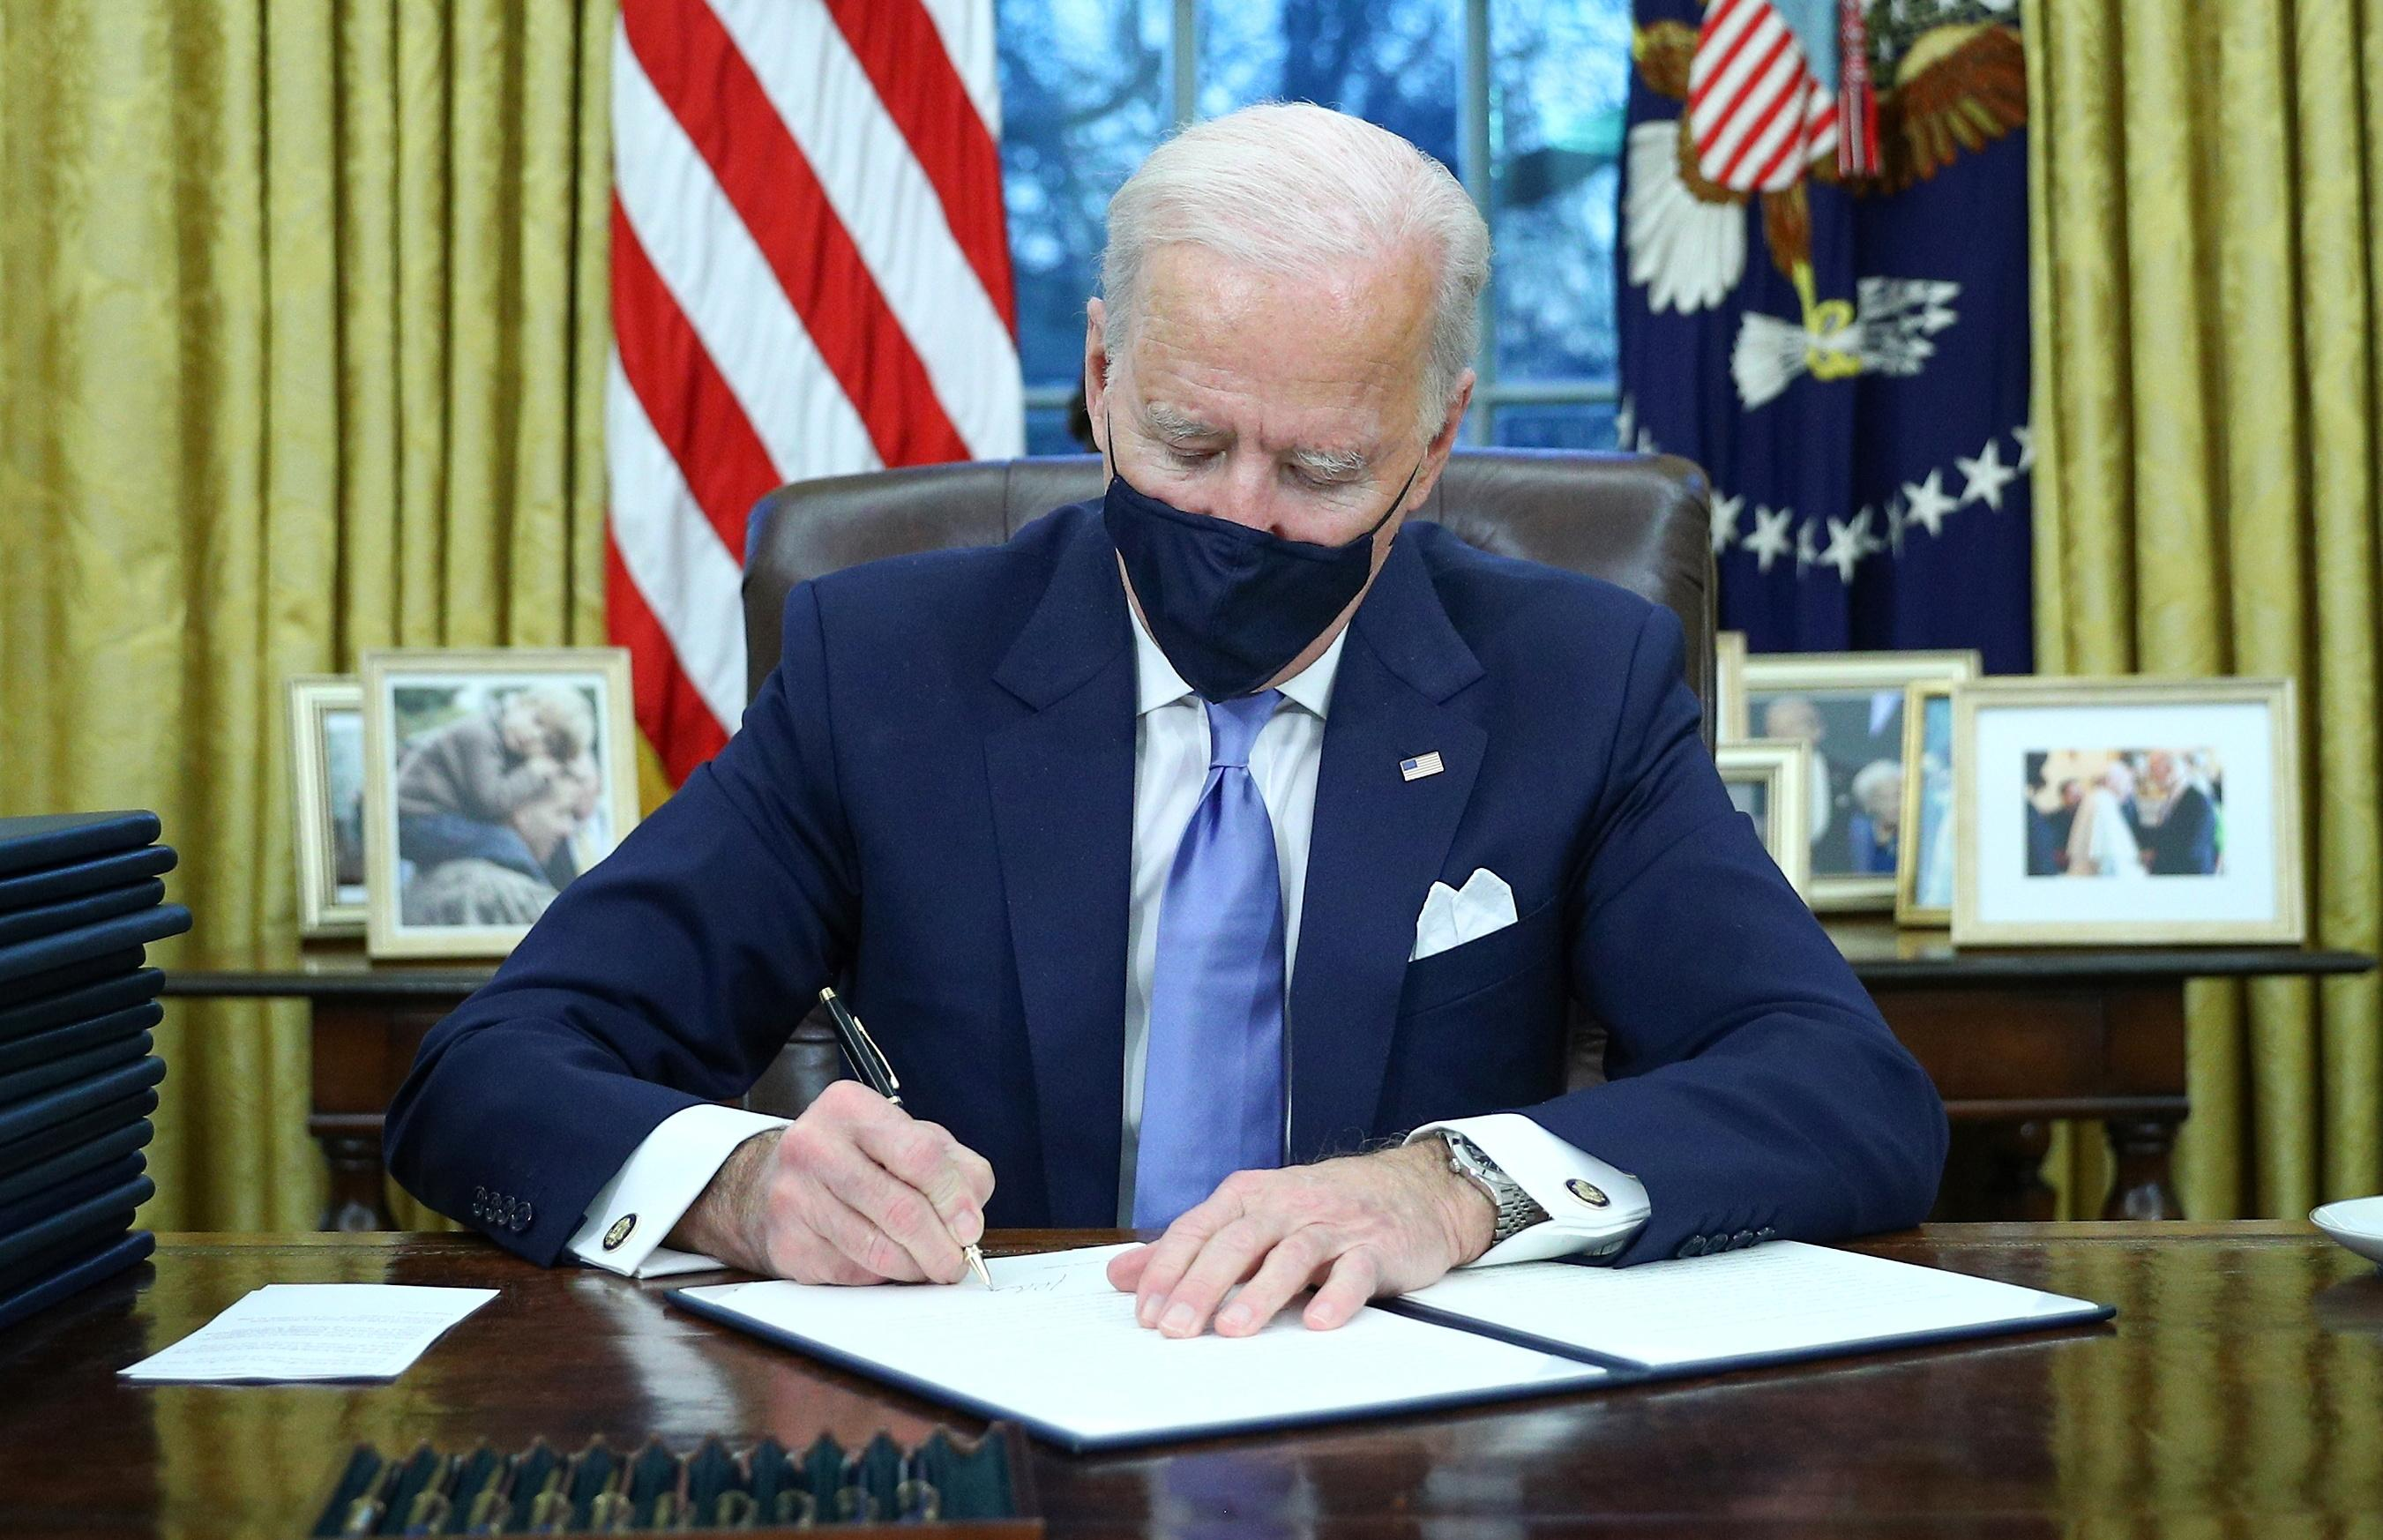 Biden announces return to global climate accord, new curbs on U.S. oil industry